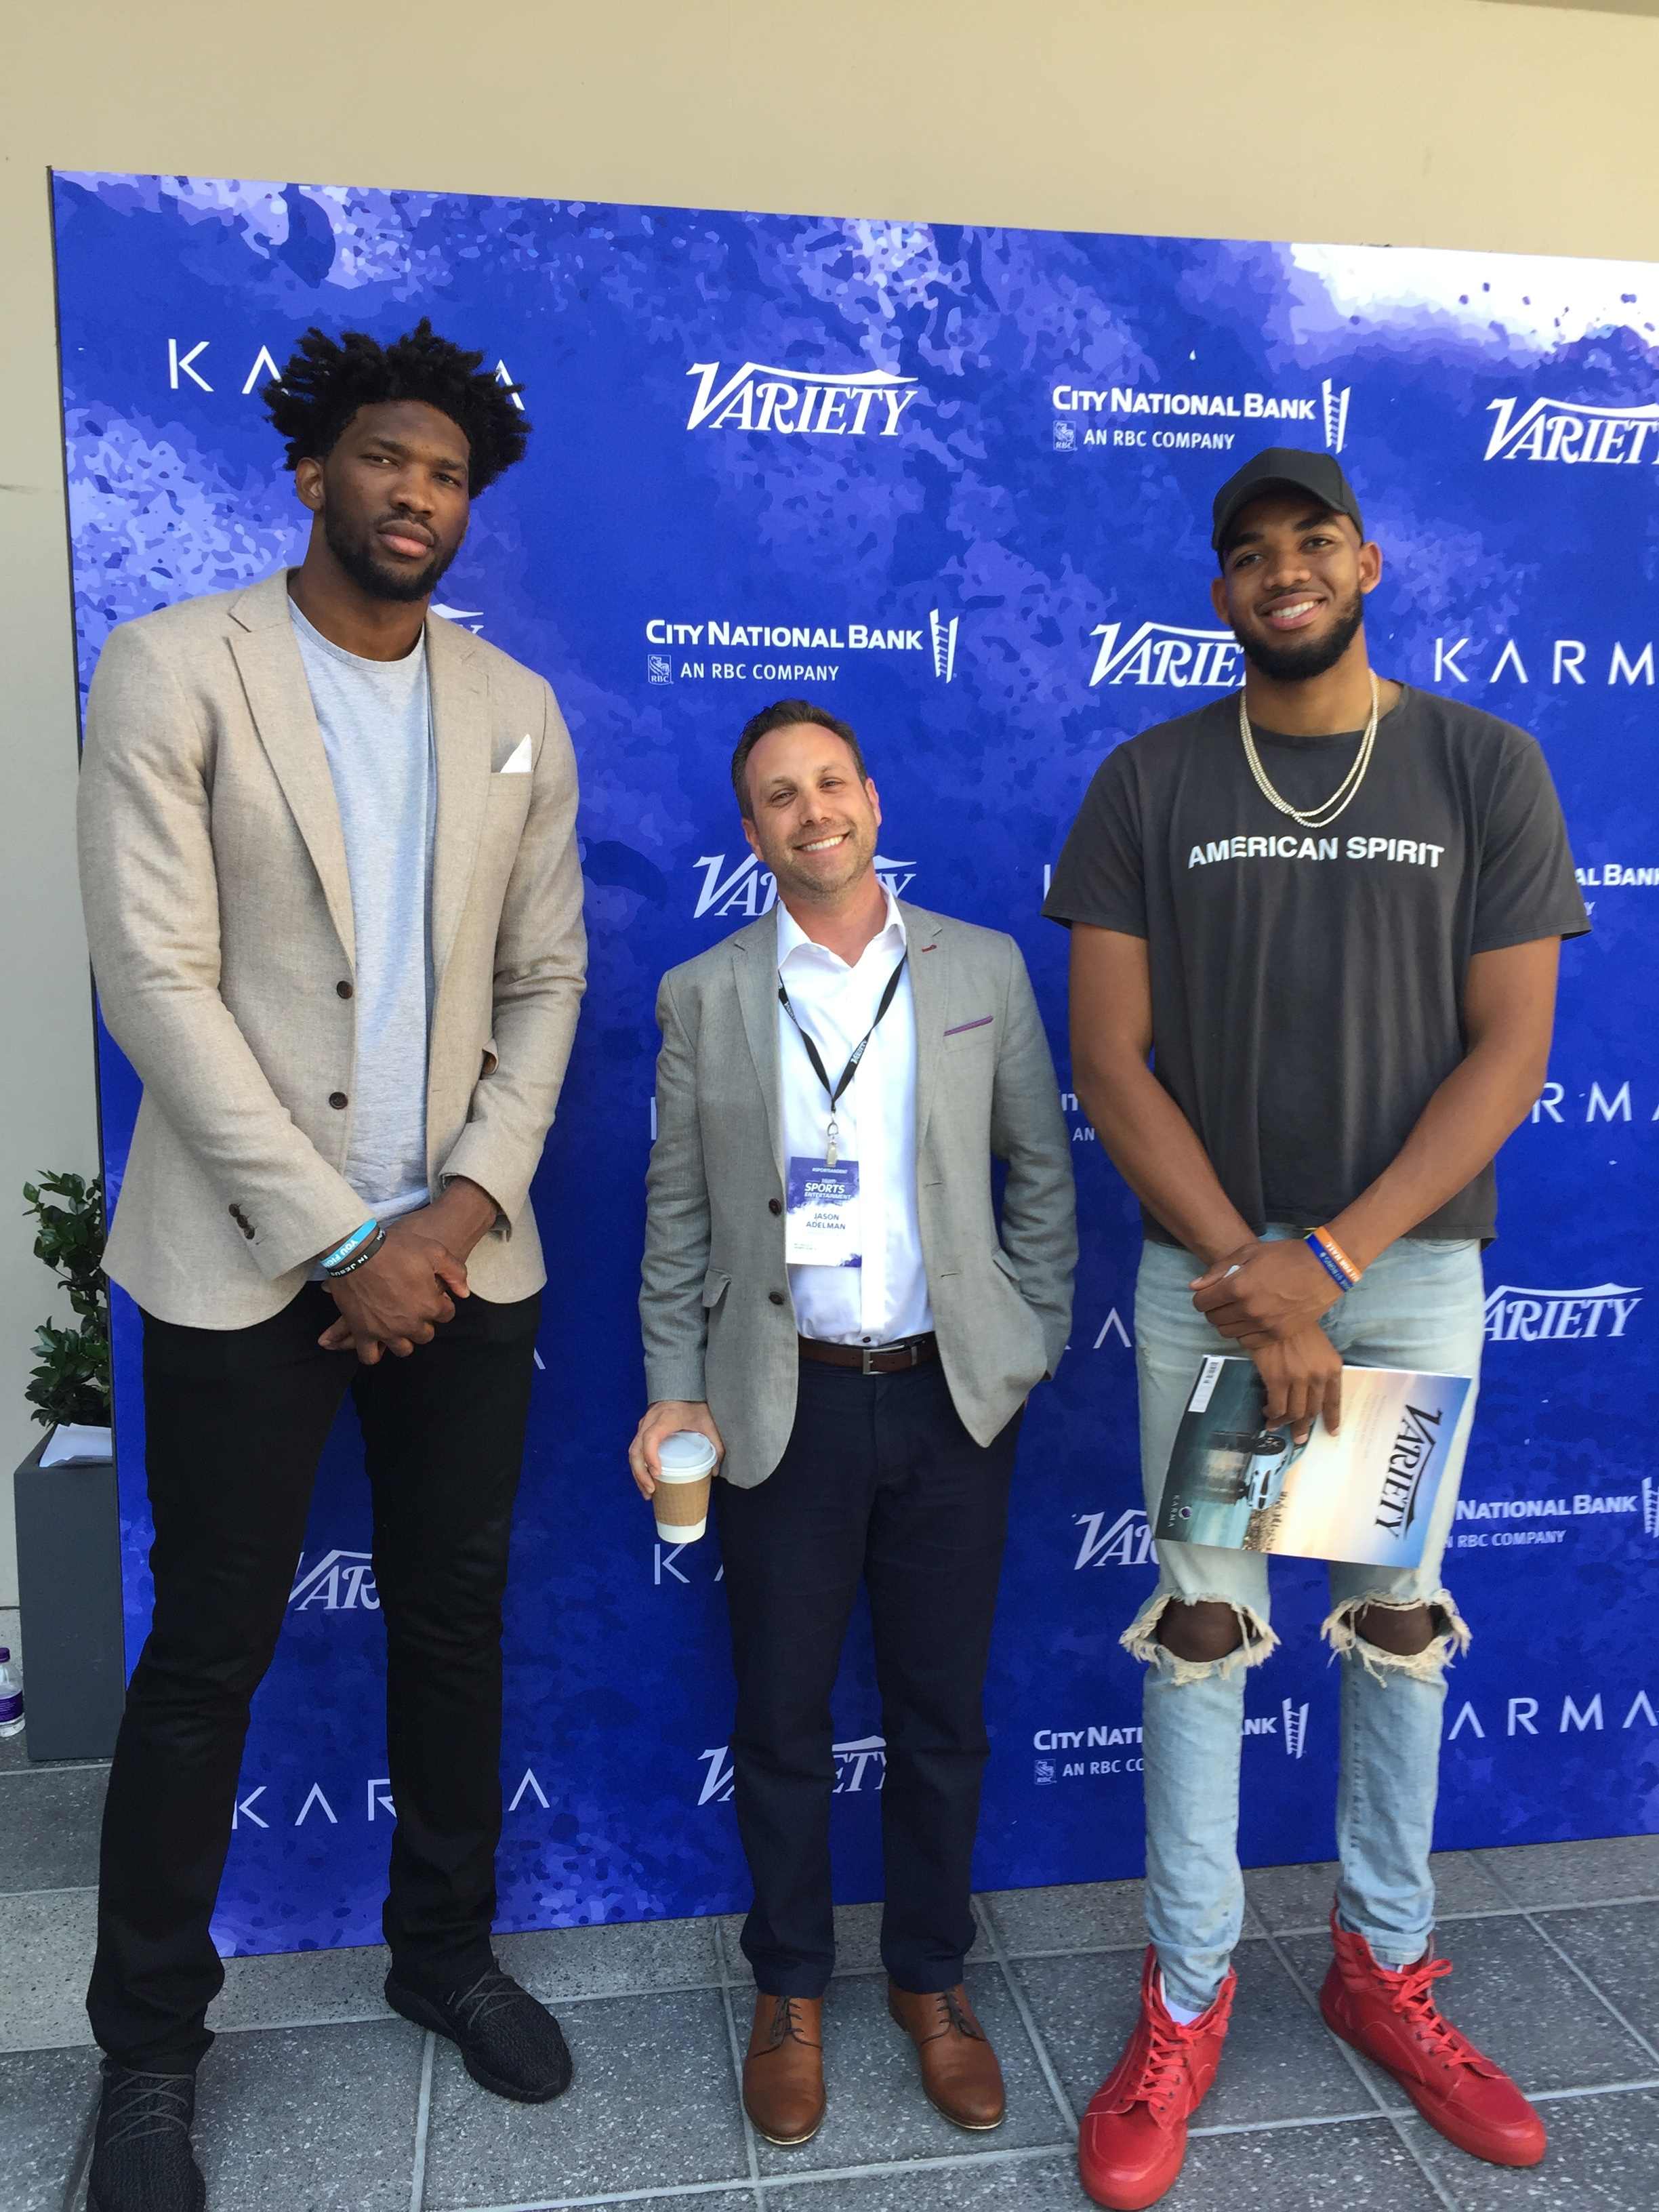 Philadelphia 76ers' Joel Embiid, HABANA Avenue's Jason Adelman & Minnesota Timberwolves' Karl-Anthony Towns at the 2017 Variety Sports & Entertainment Summit